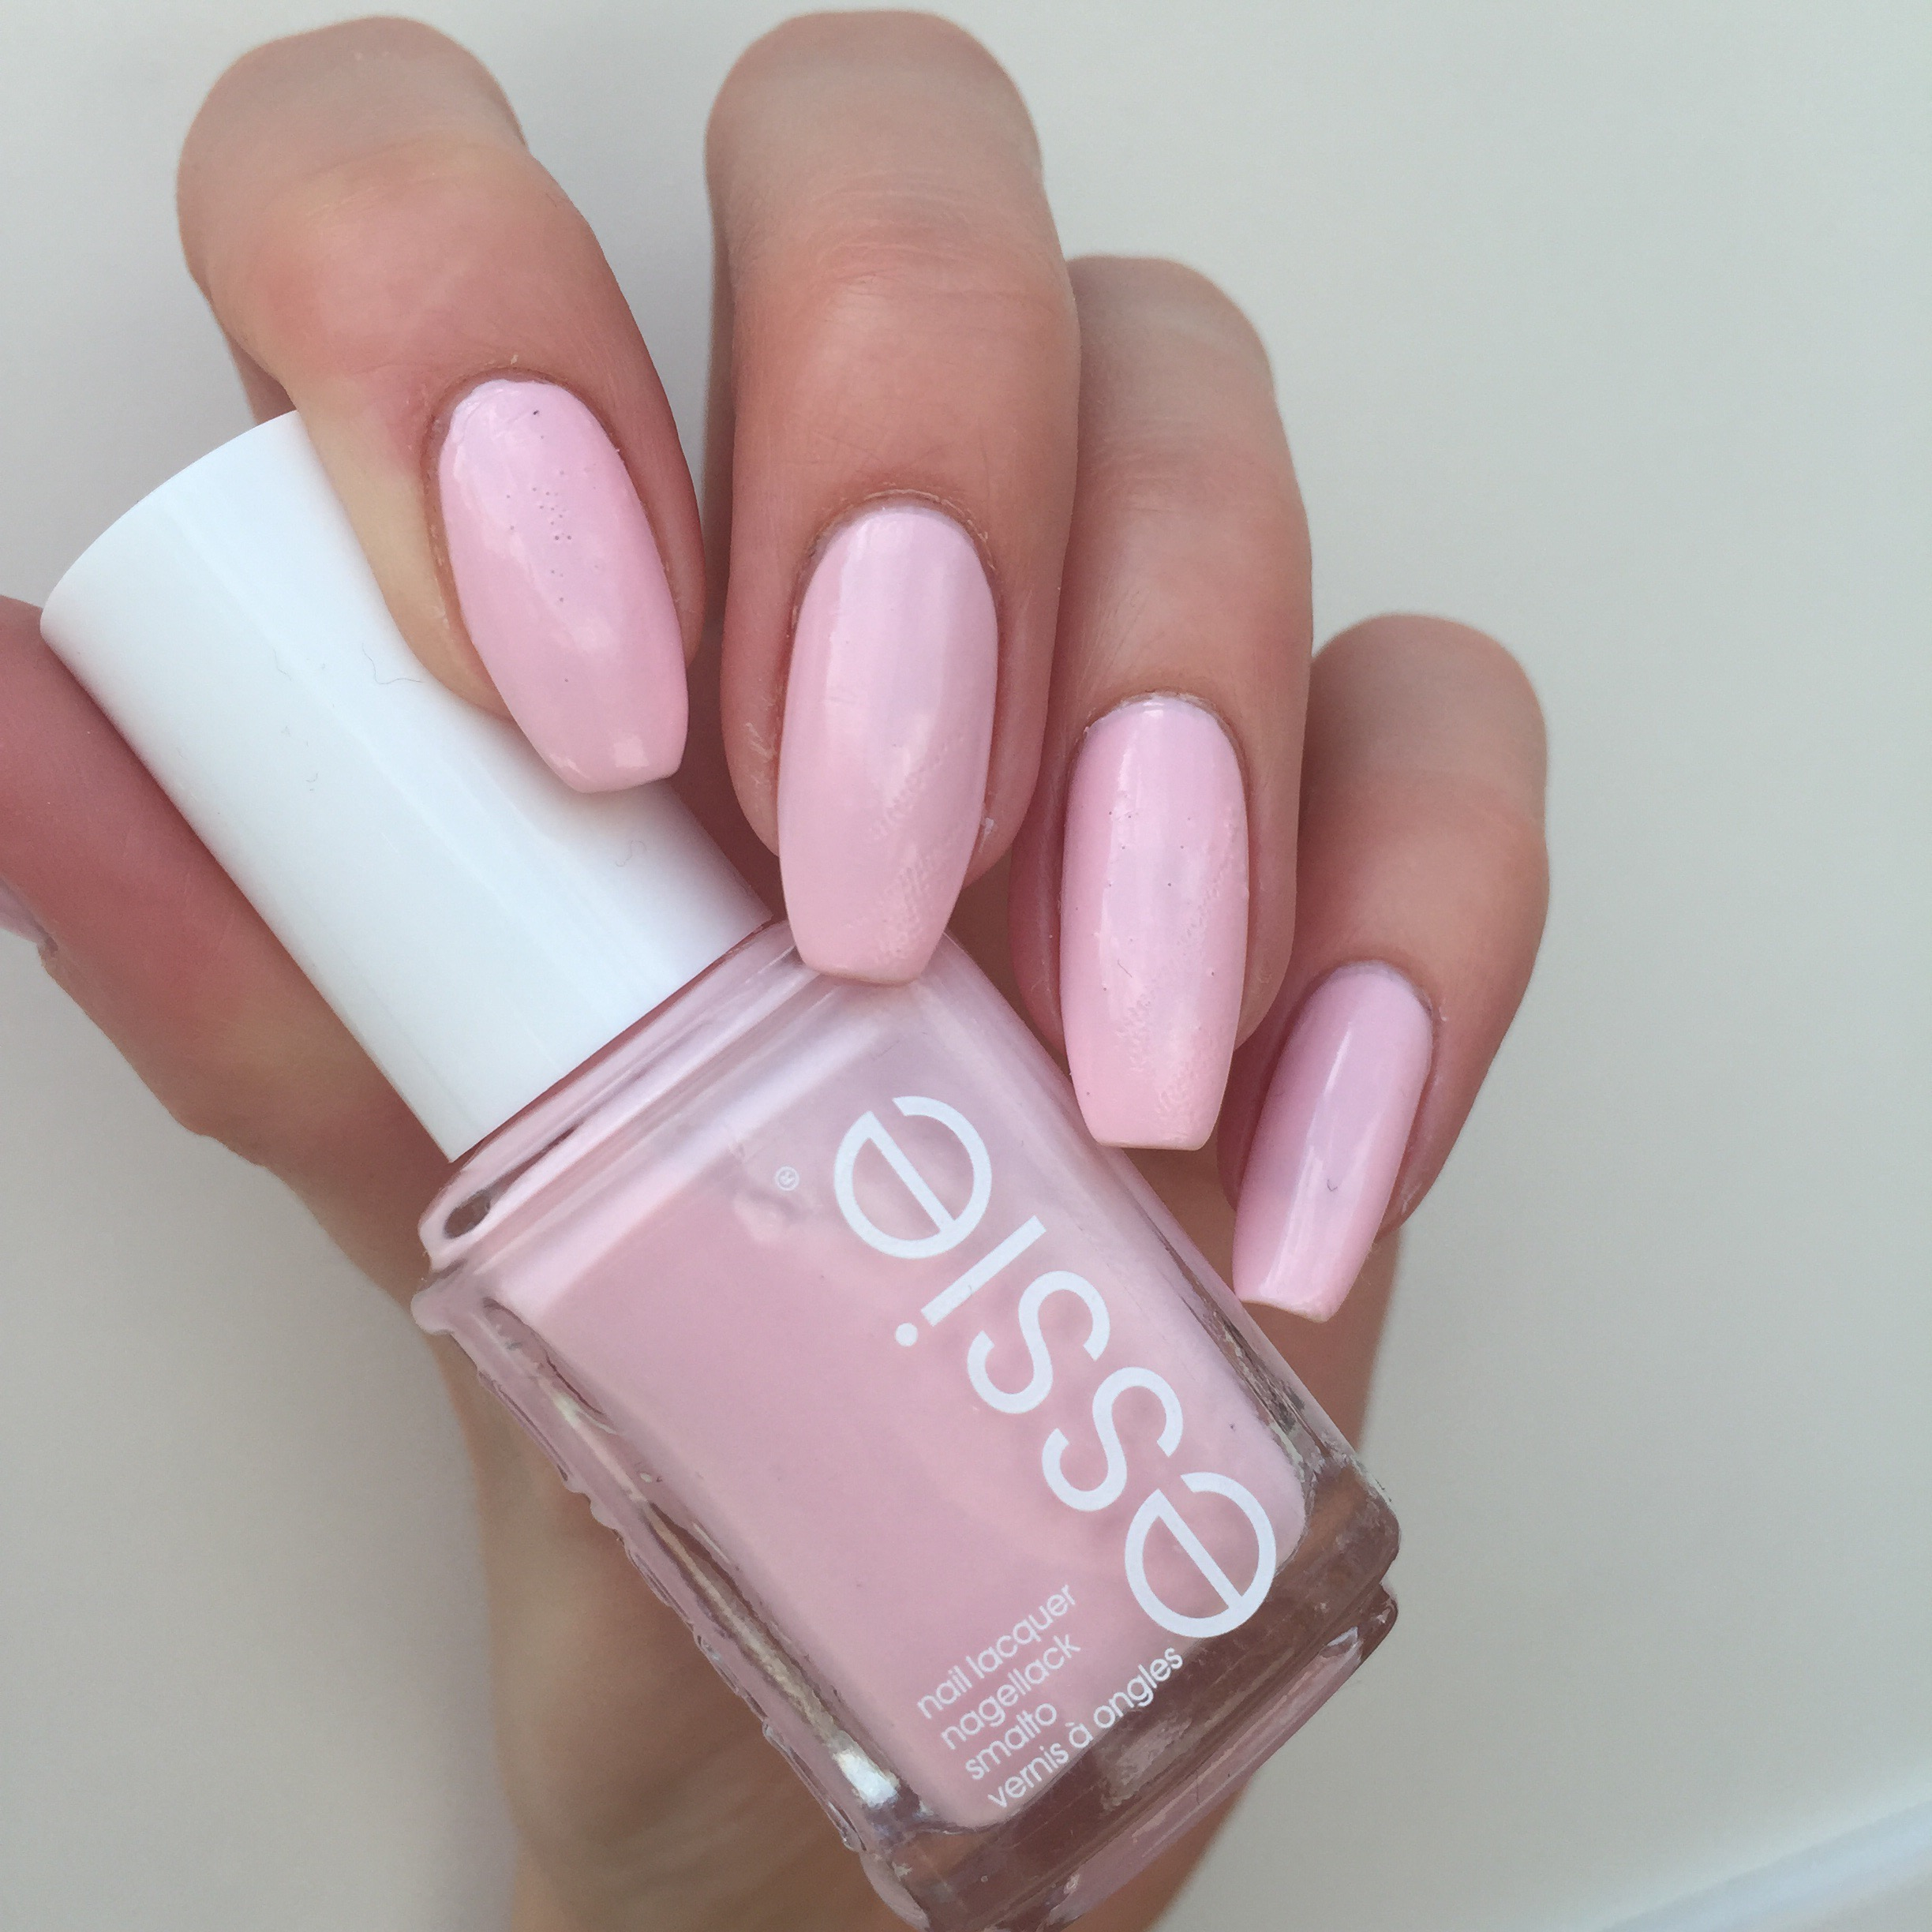 Essieneutrals Swatches And Reviews Of Essie Whites